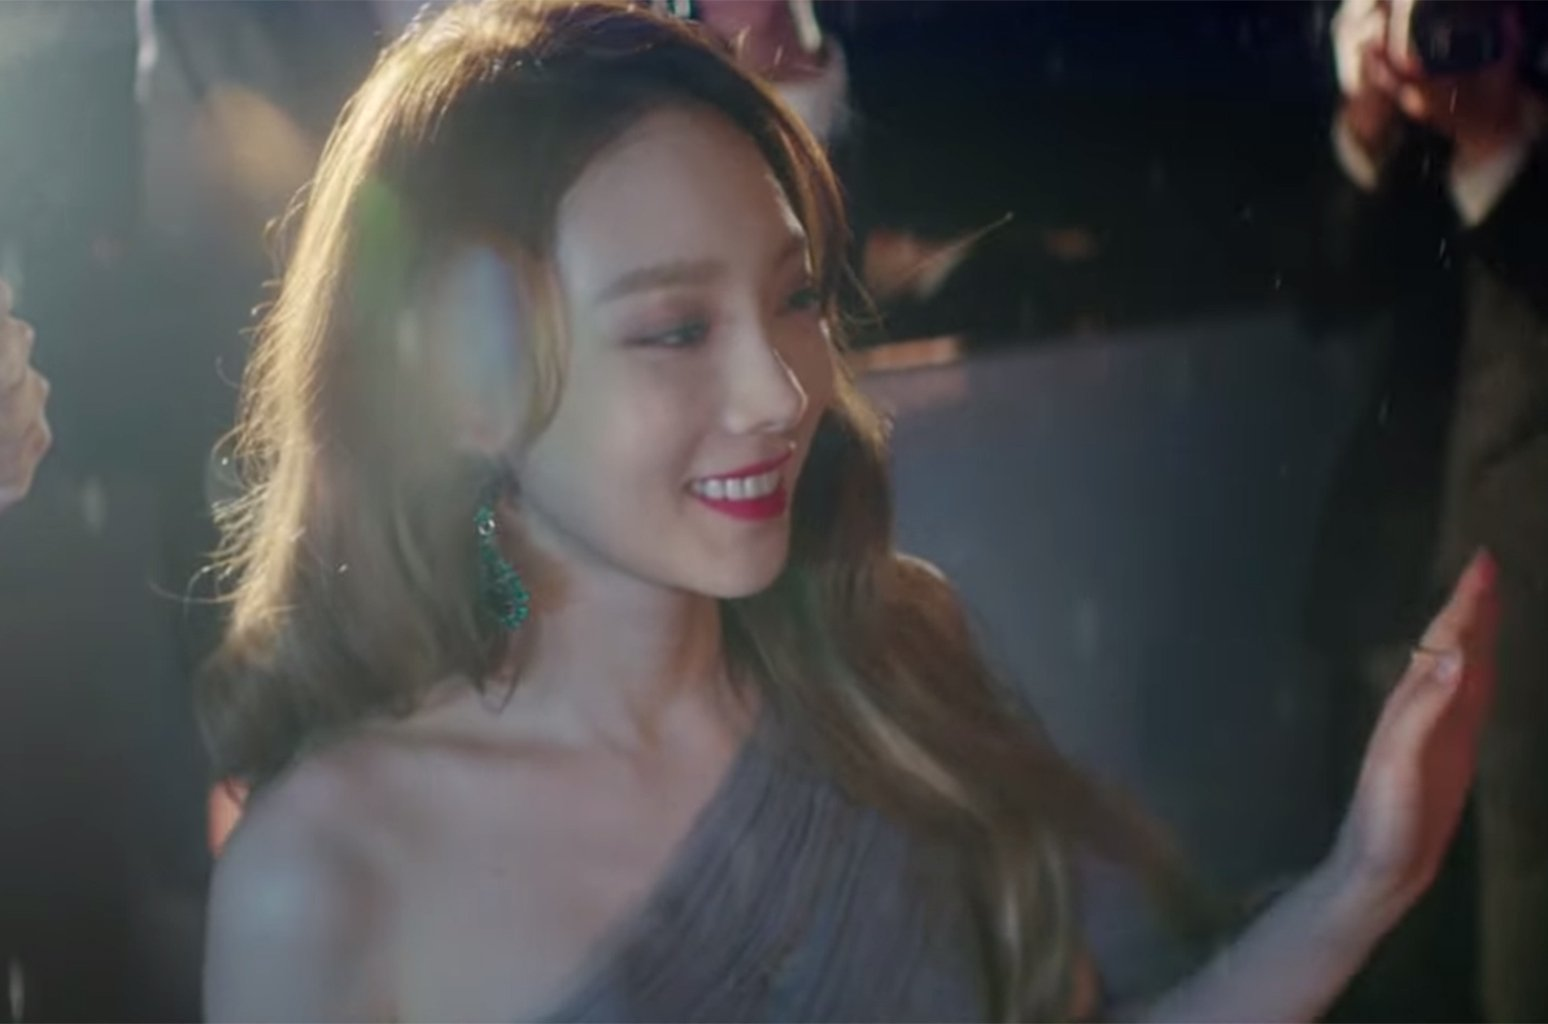 Taeyeon takes out her enemies  in the music video for 'Something New' https://t.co/etajm0Mw9a https://t.co/XxbgxDeSUq